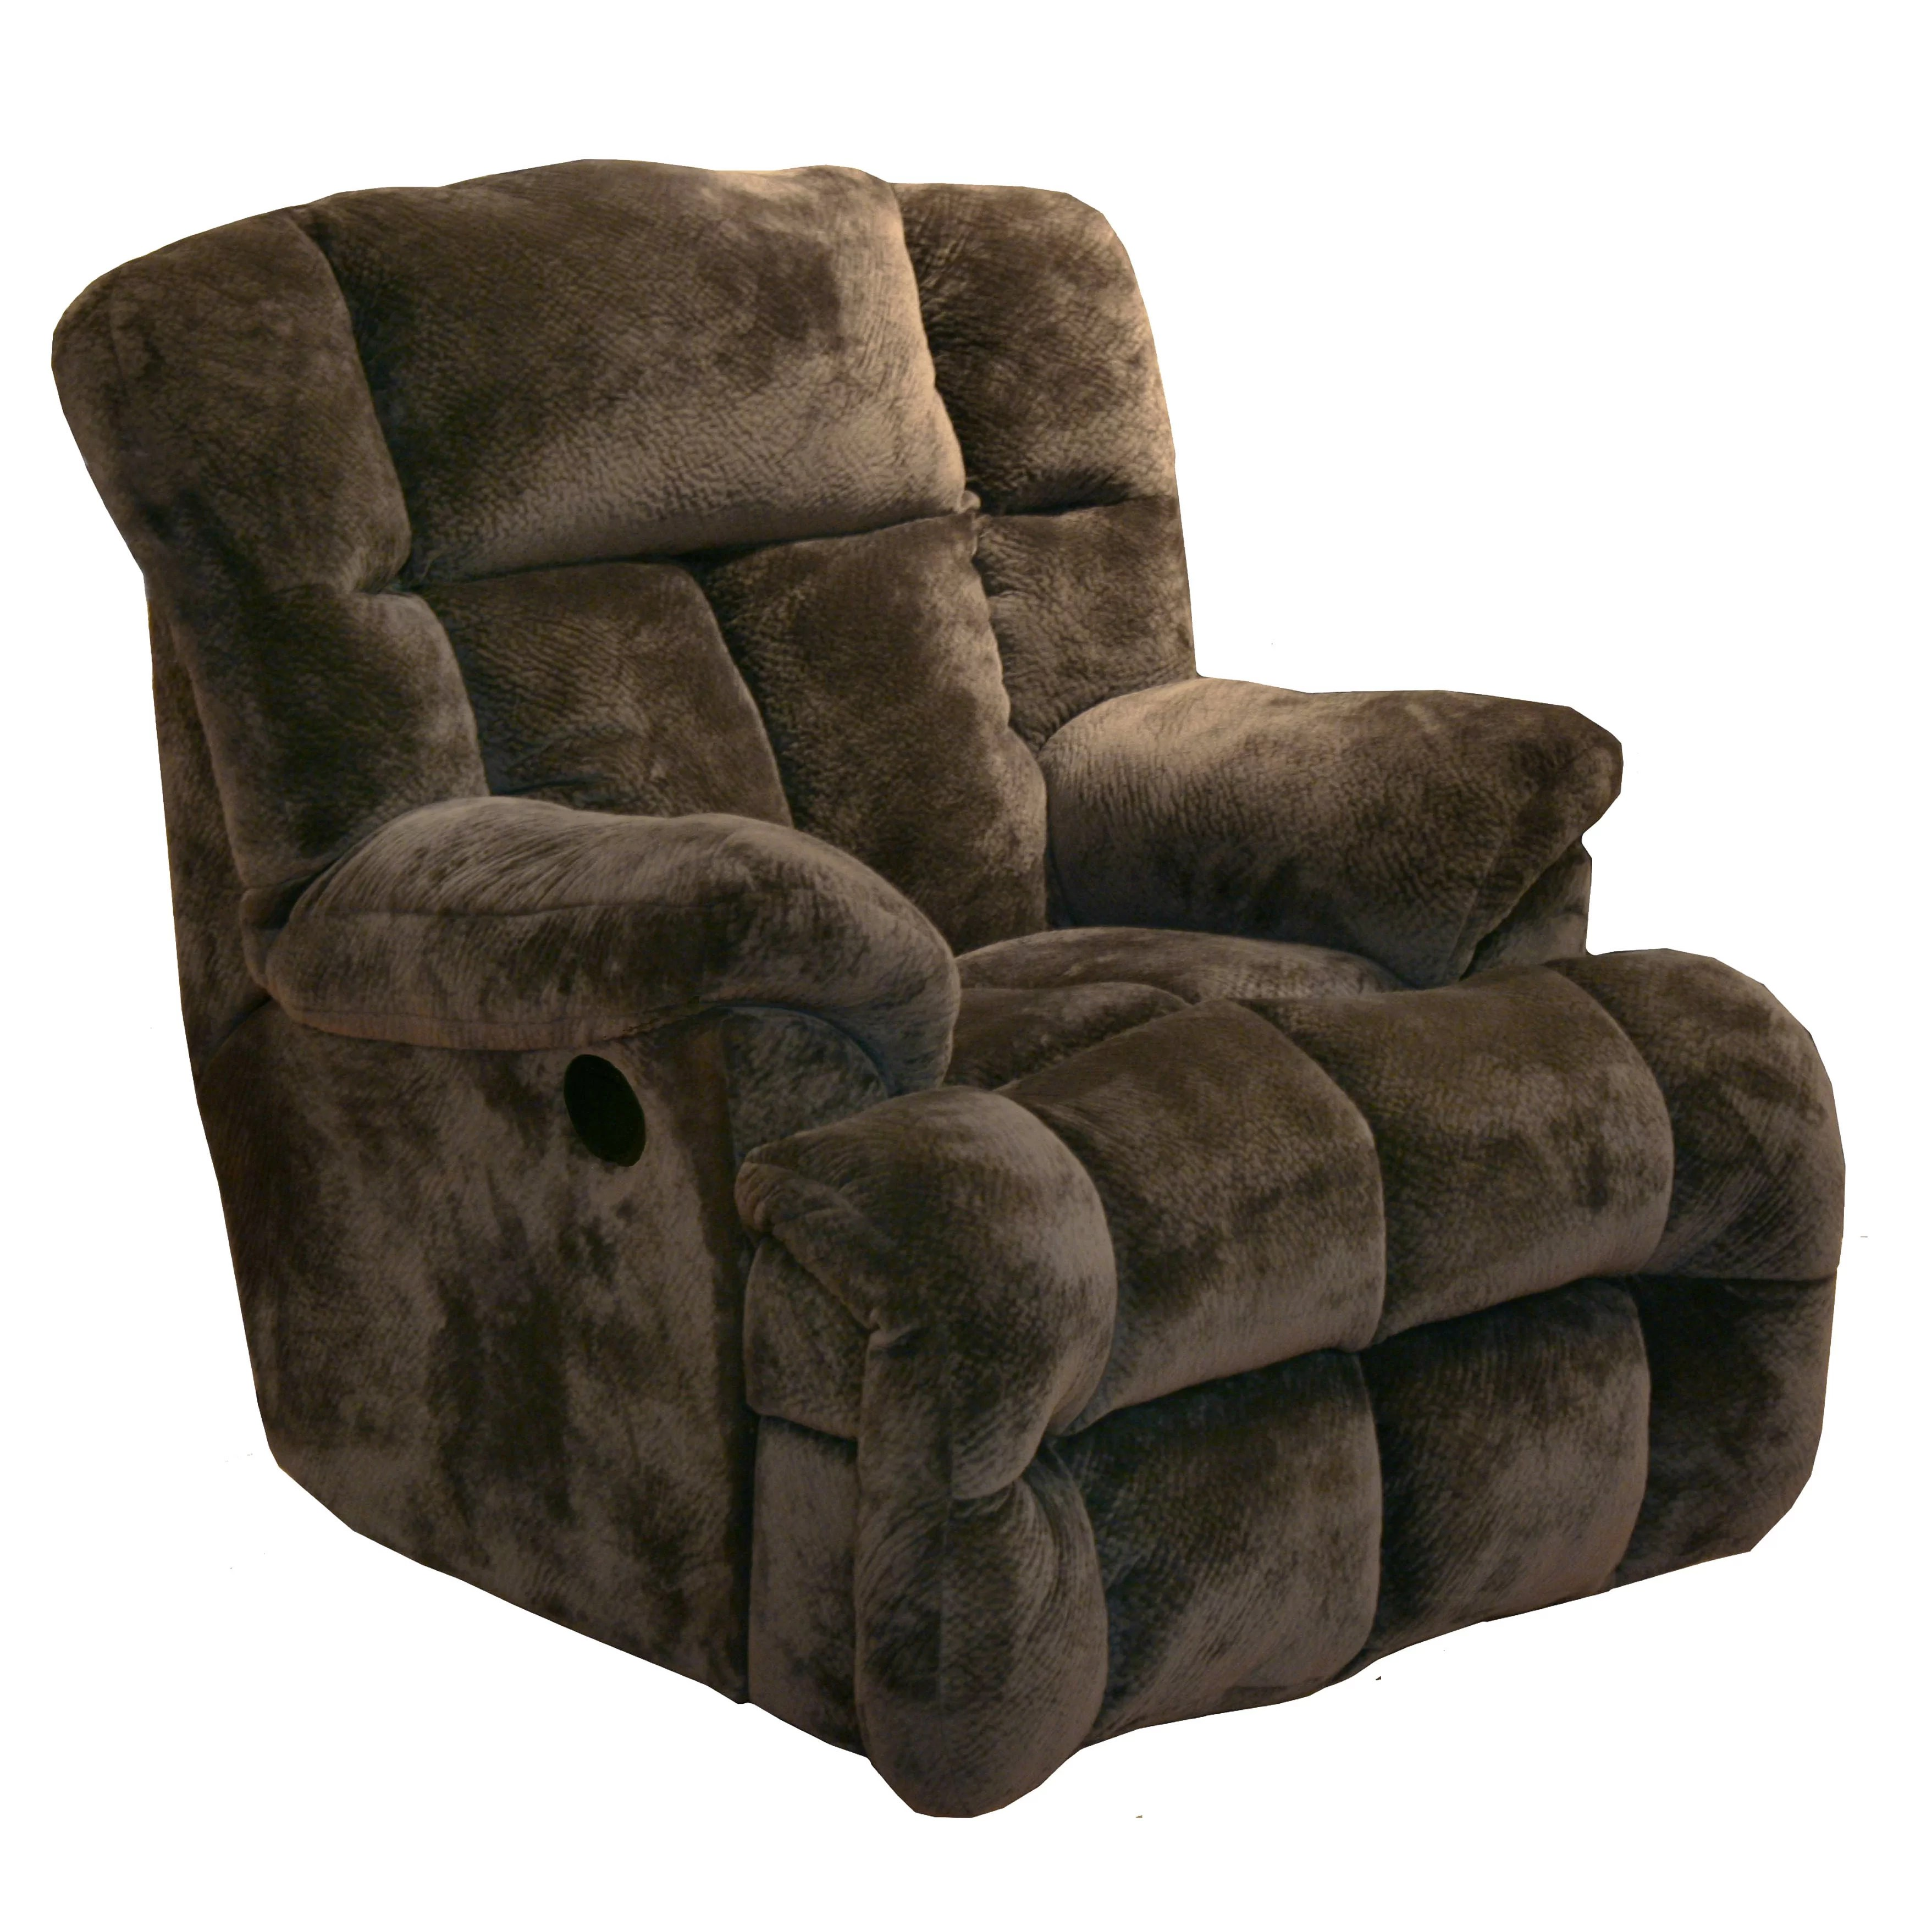 Catnapper Chair Catnapper General Chaise Wall Hugger Recliner And Reviews